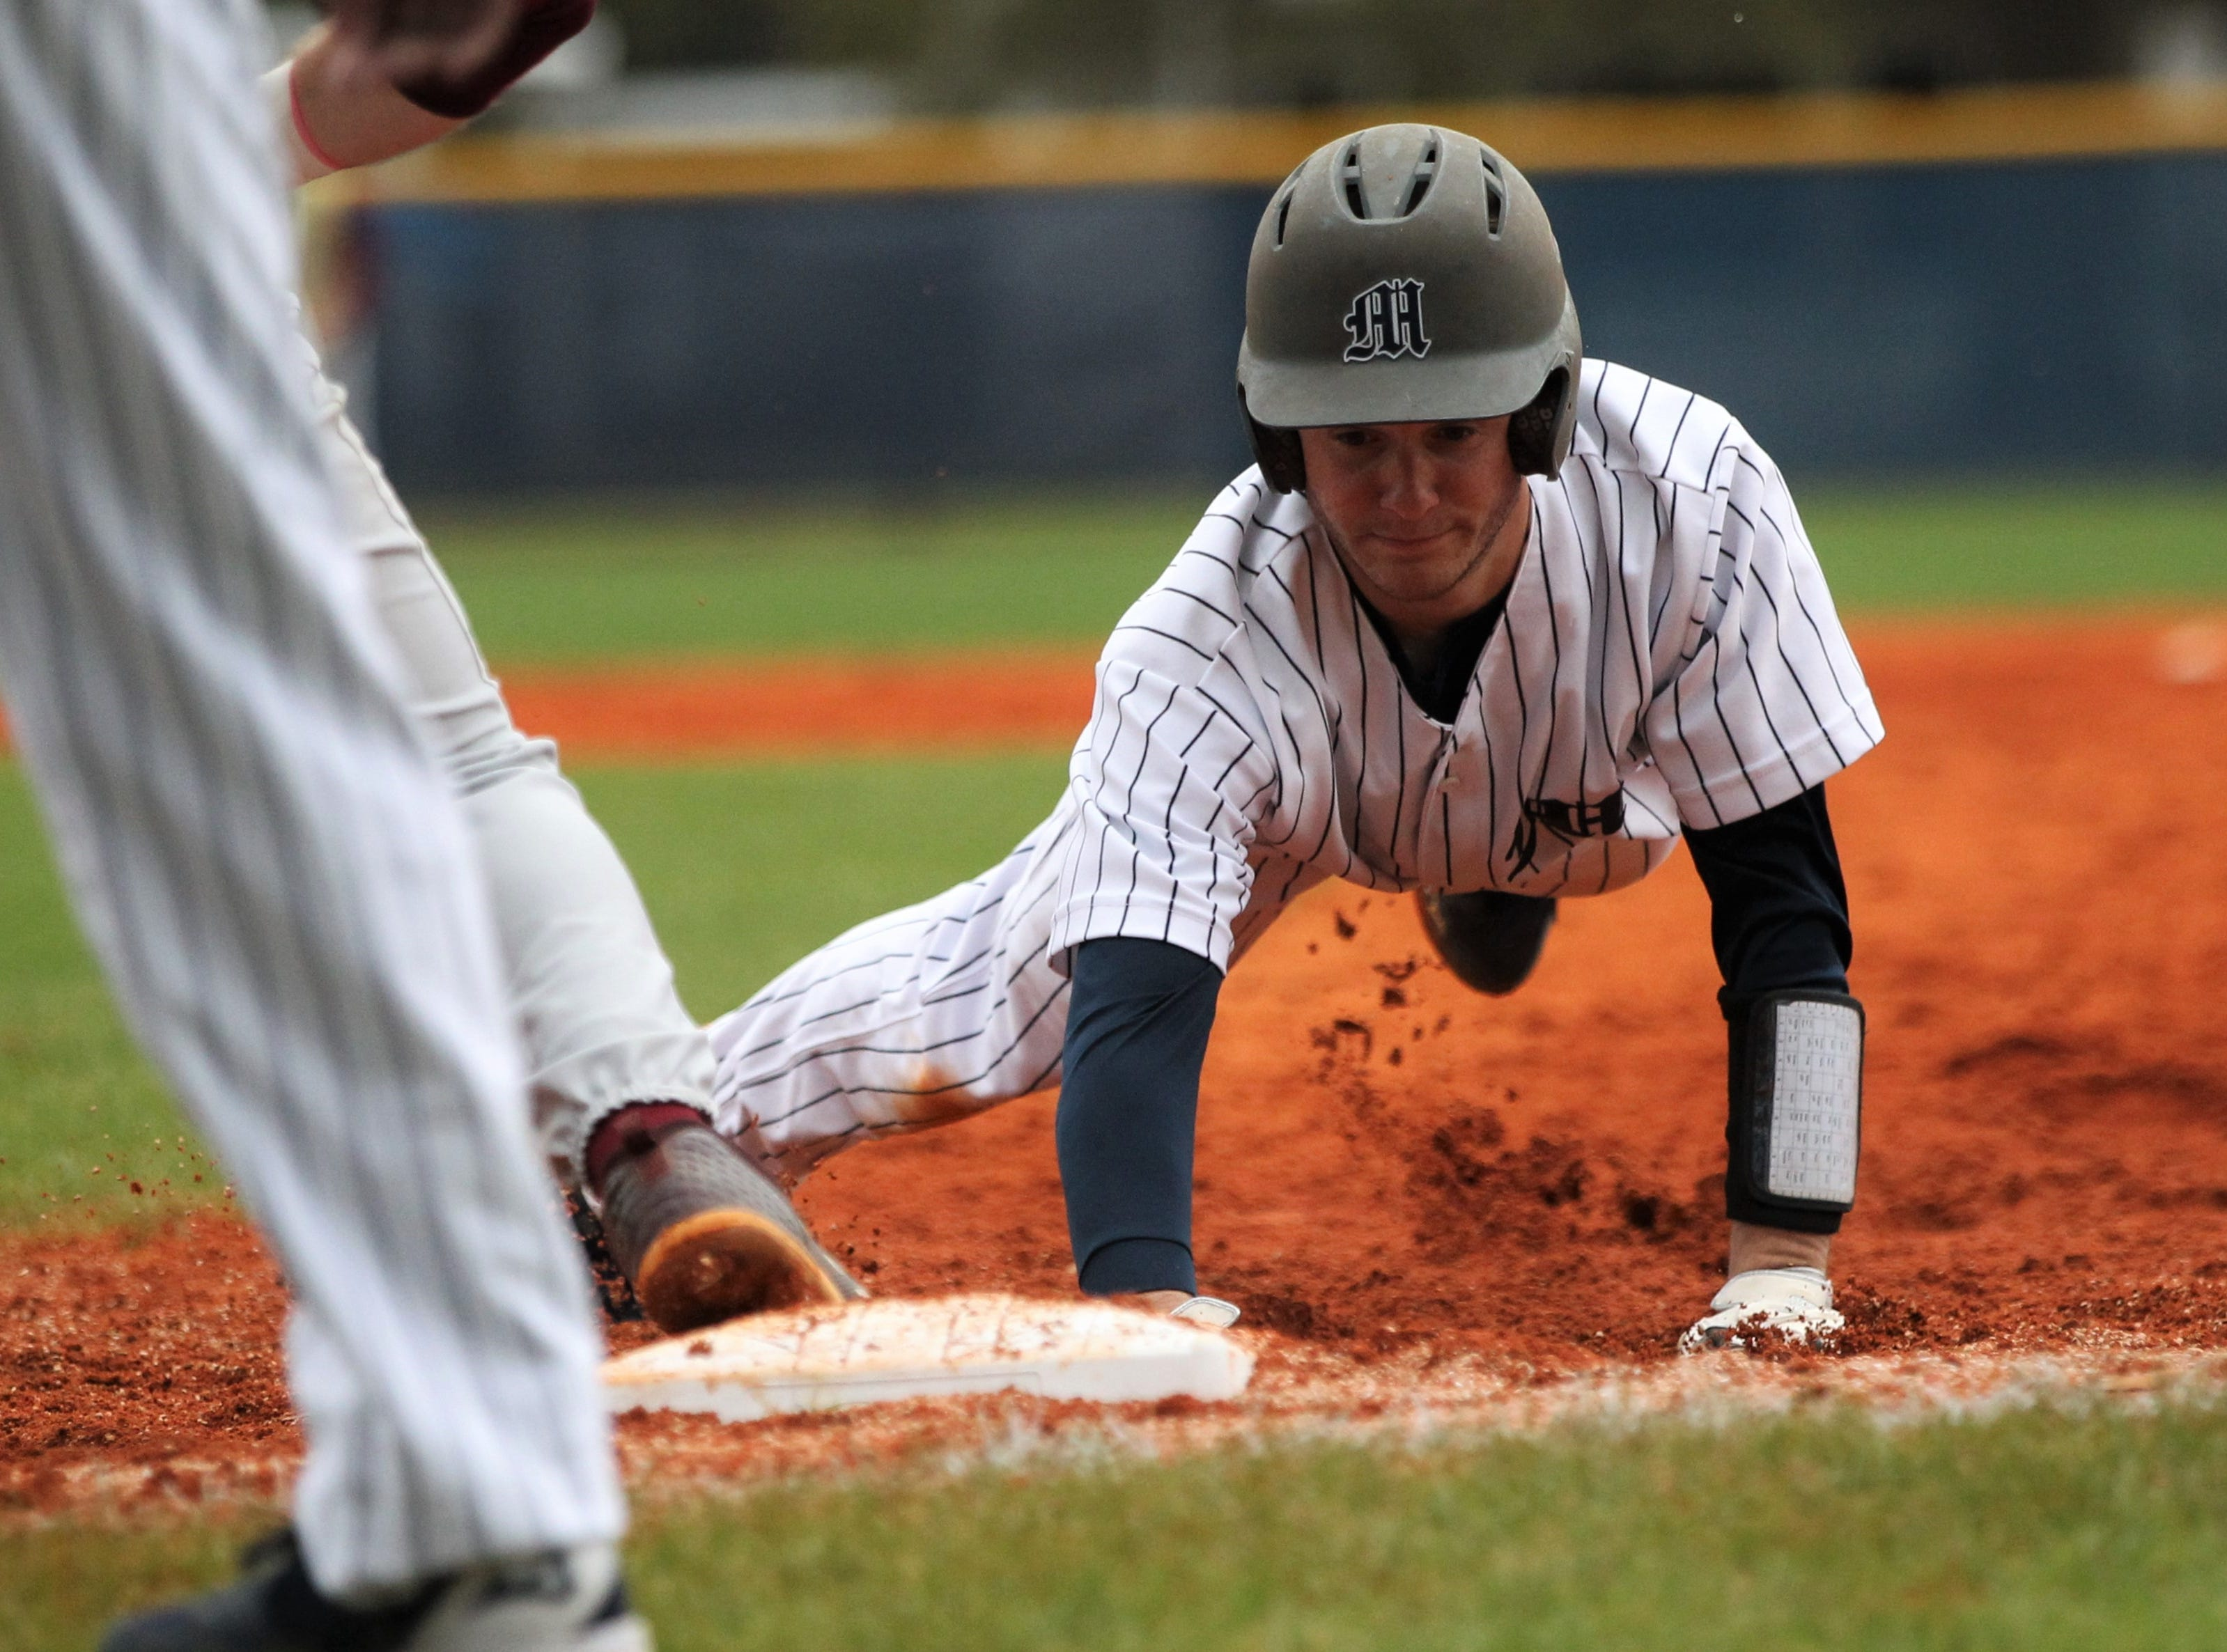 Maclay's Grant Harrison dives back into first base on a pick-off attempt as Liberty County's baseball team went on the road to beat Maclay 8-2 on Saturday, March 16, 2019. The Bulldogs played their first game following their head coach Corey Crum's tragic death six days ago.